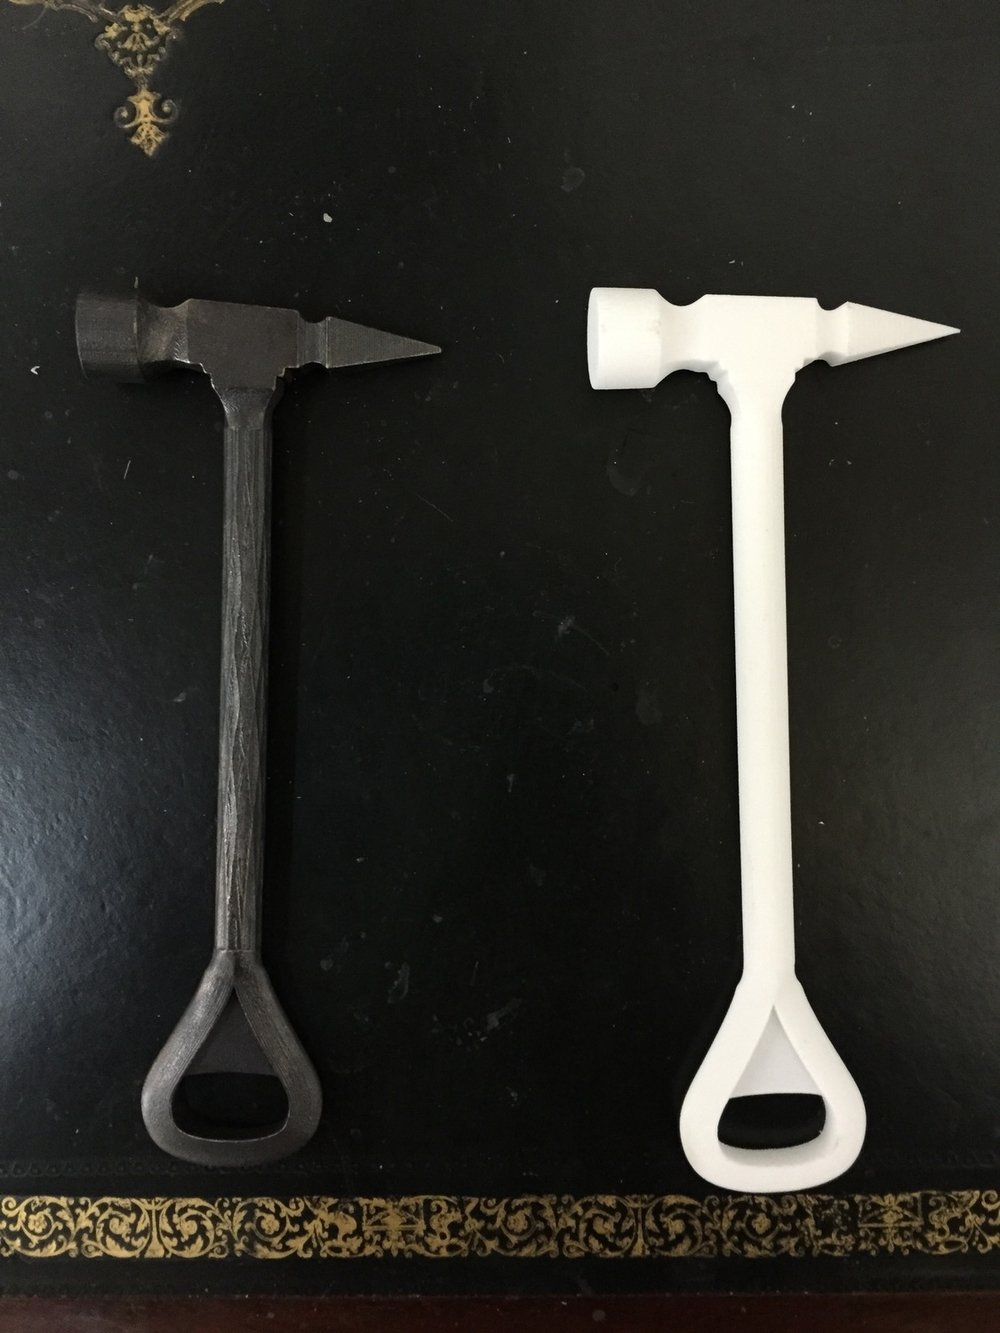 The metal and plastic bar-tool prototypes.